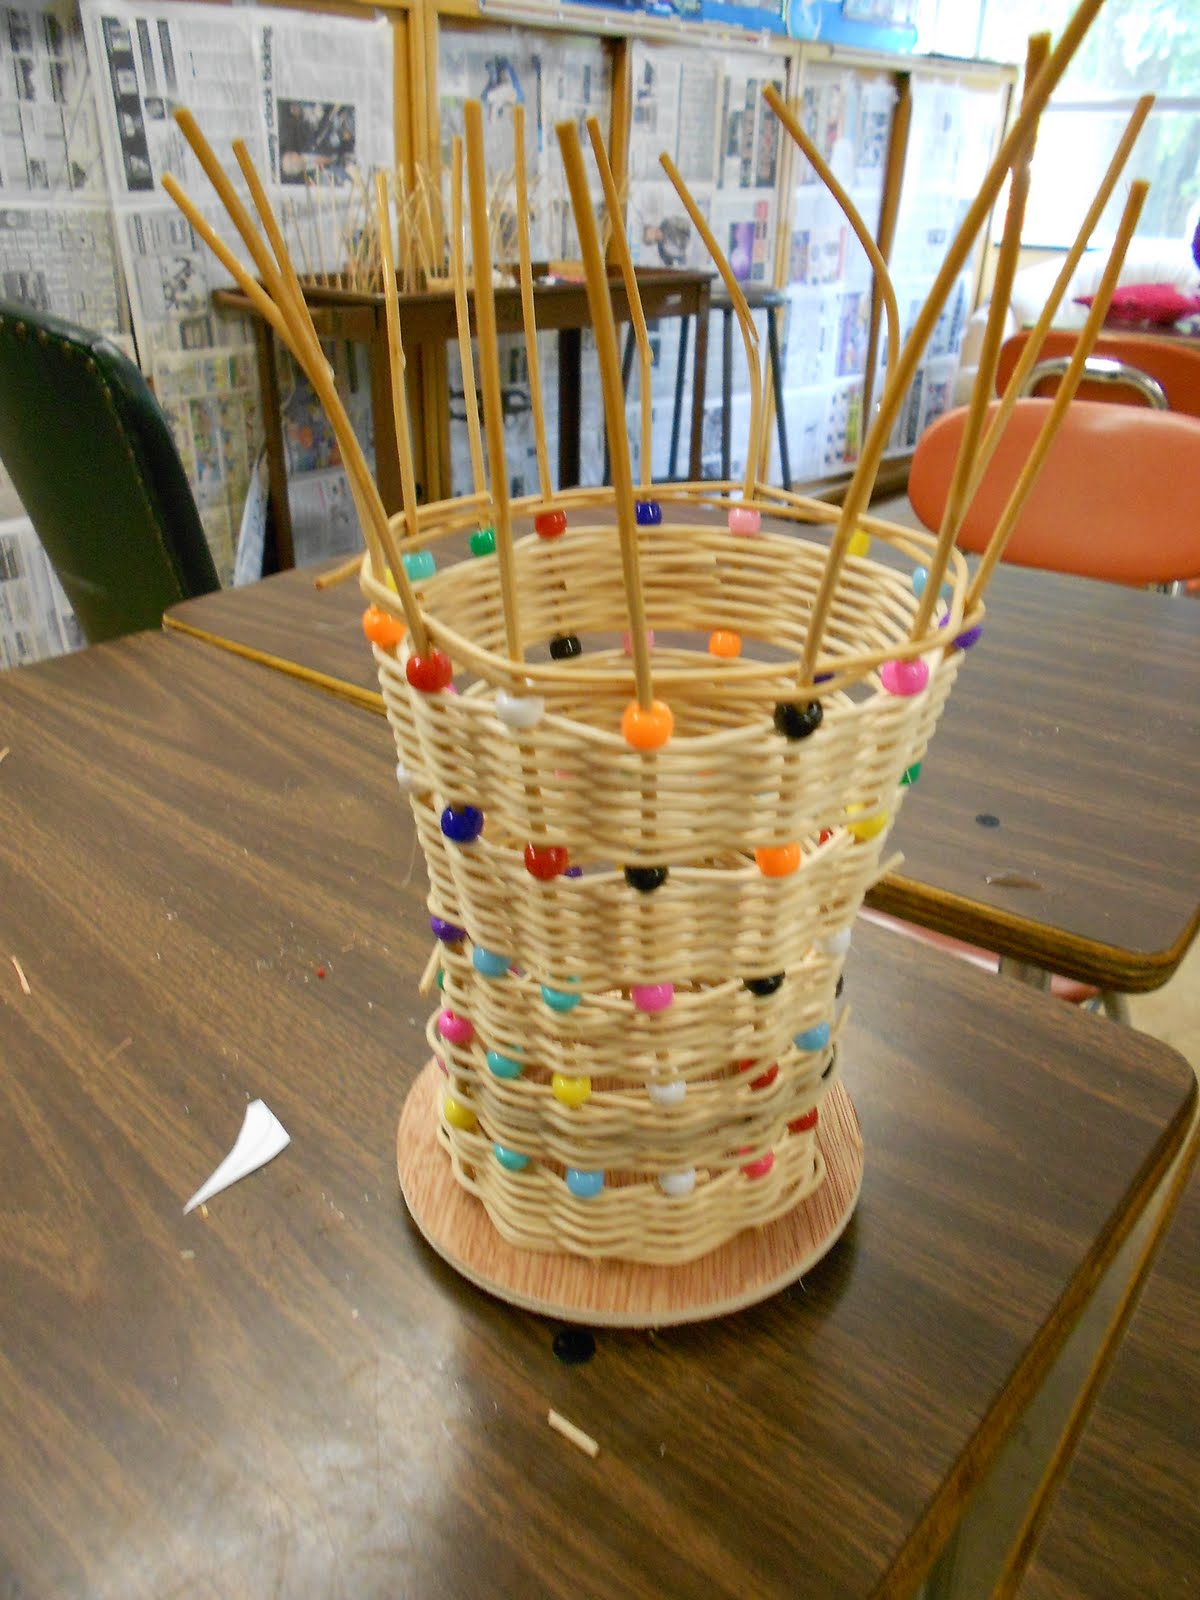 Basket Weaving Uses : Rd craft project completed basket weaving artmuse